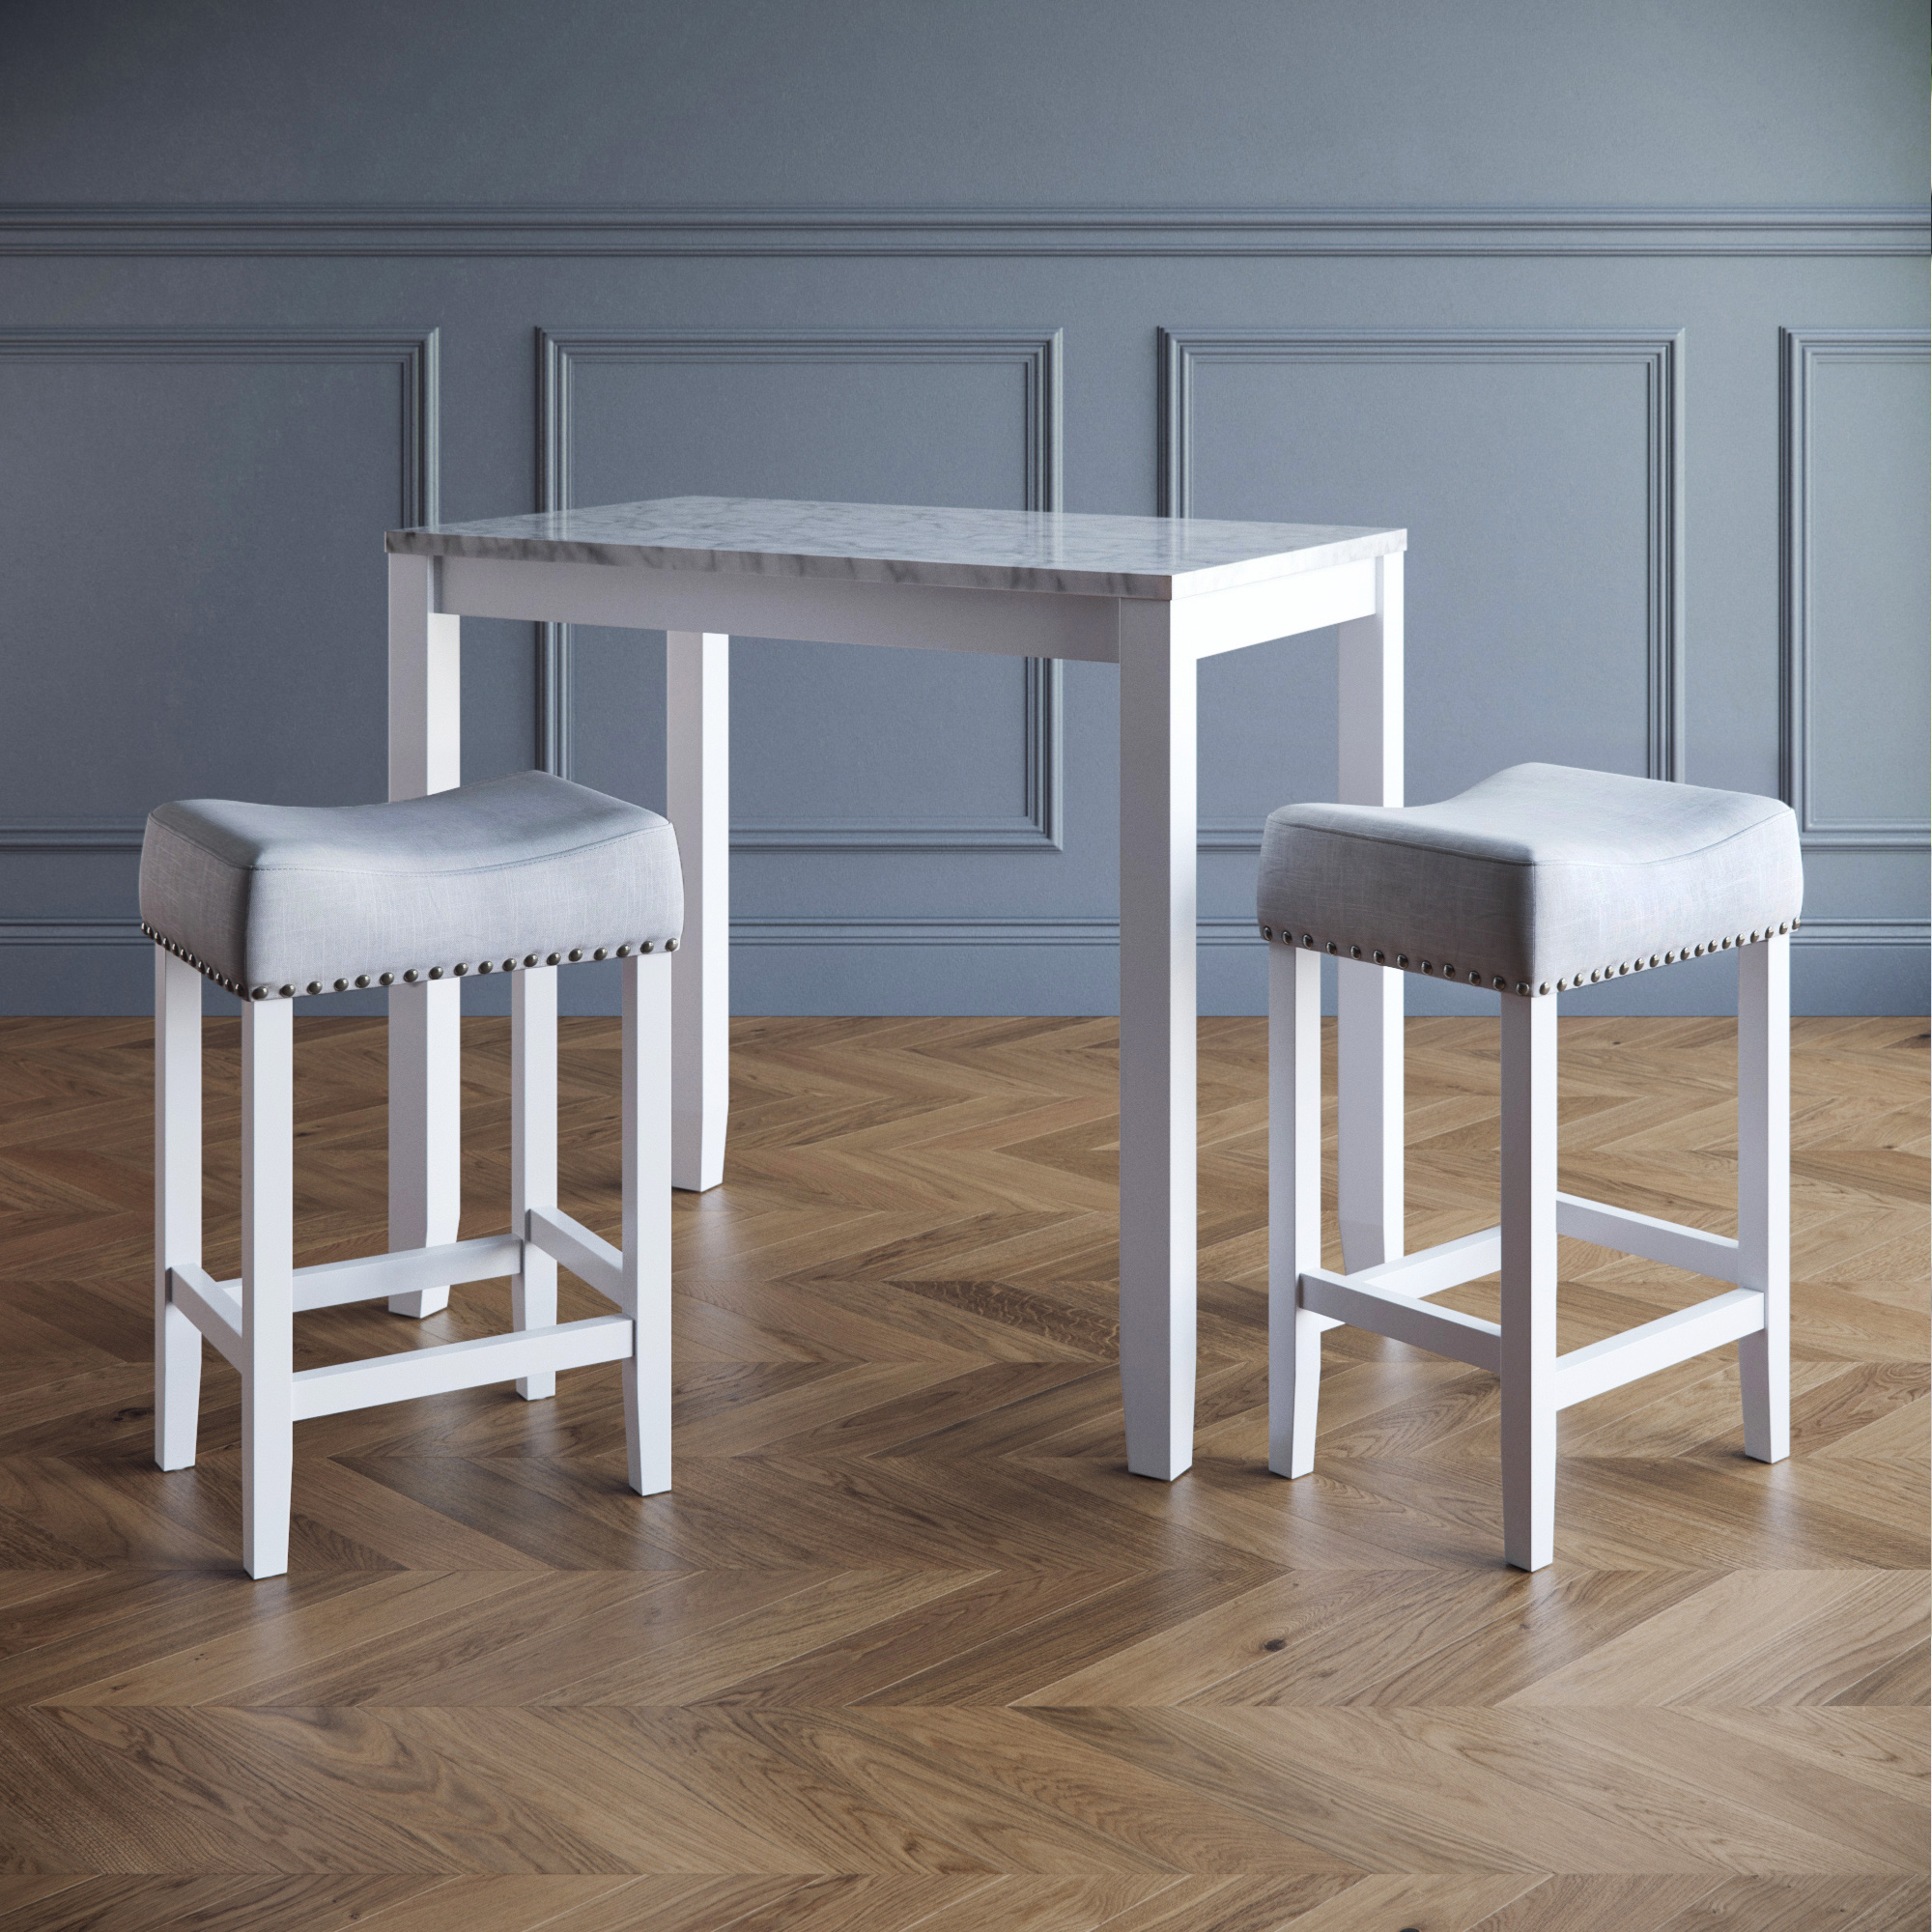 Viktor Three Piece Dining Set Kitchen Pub Table White Marble Top, White Wood Base, Light Gray Fabric Seat